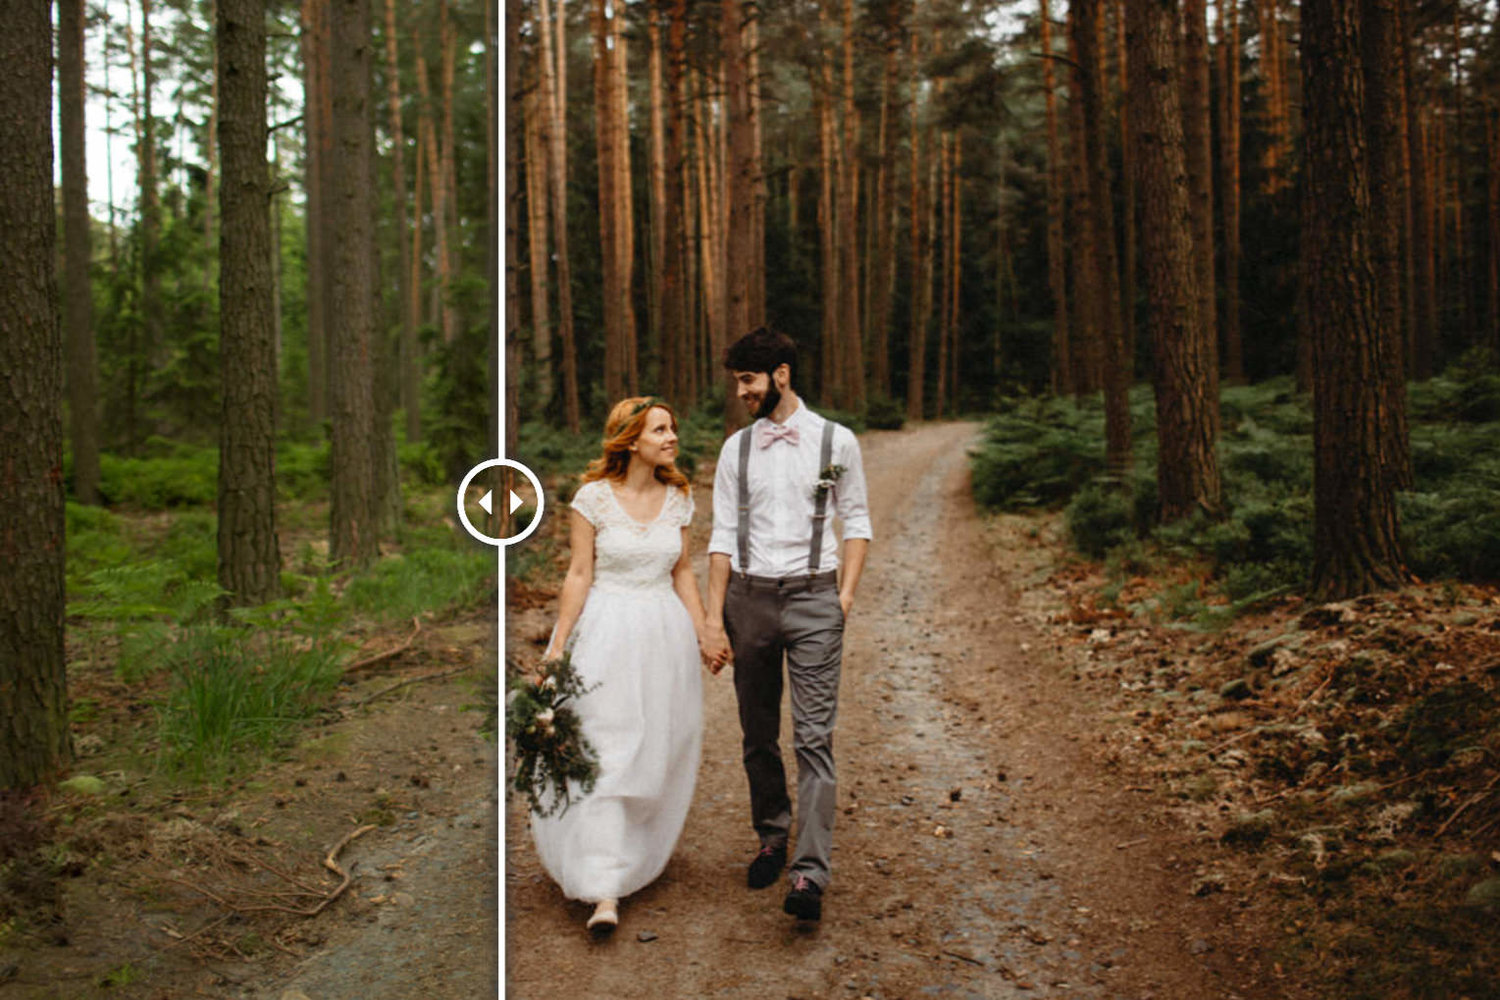 WEDDING PHOTOGRAPHY EDITING TIPS - CREATING SOFT EARTHY